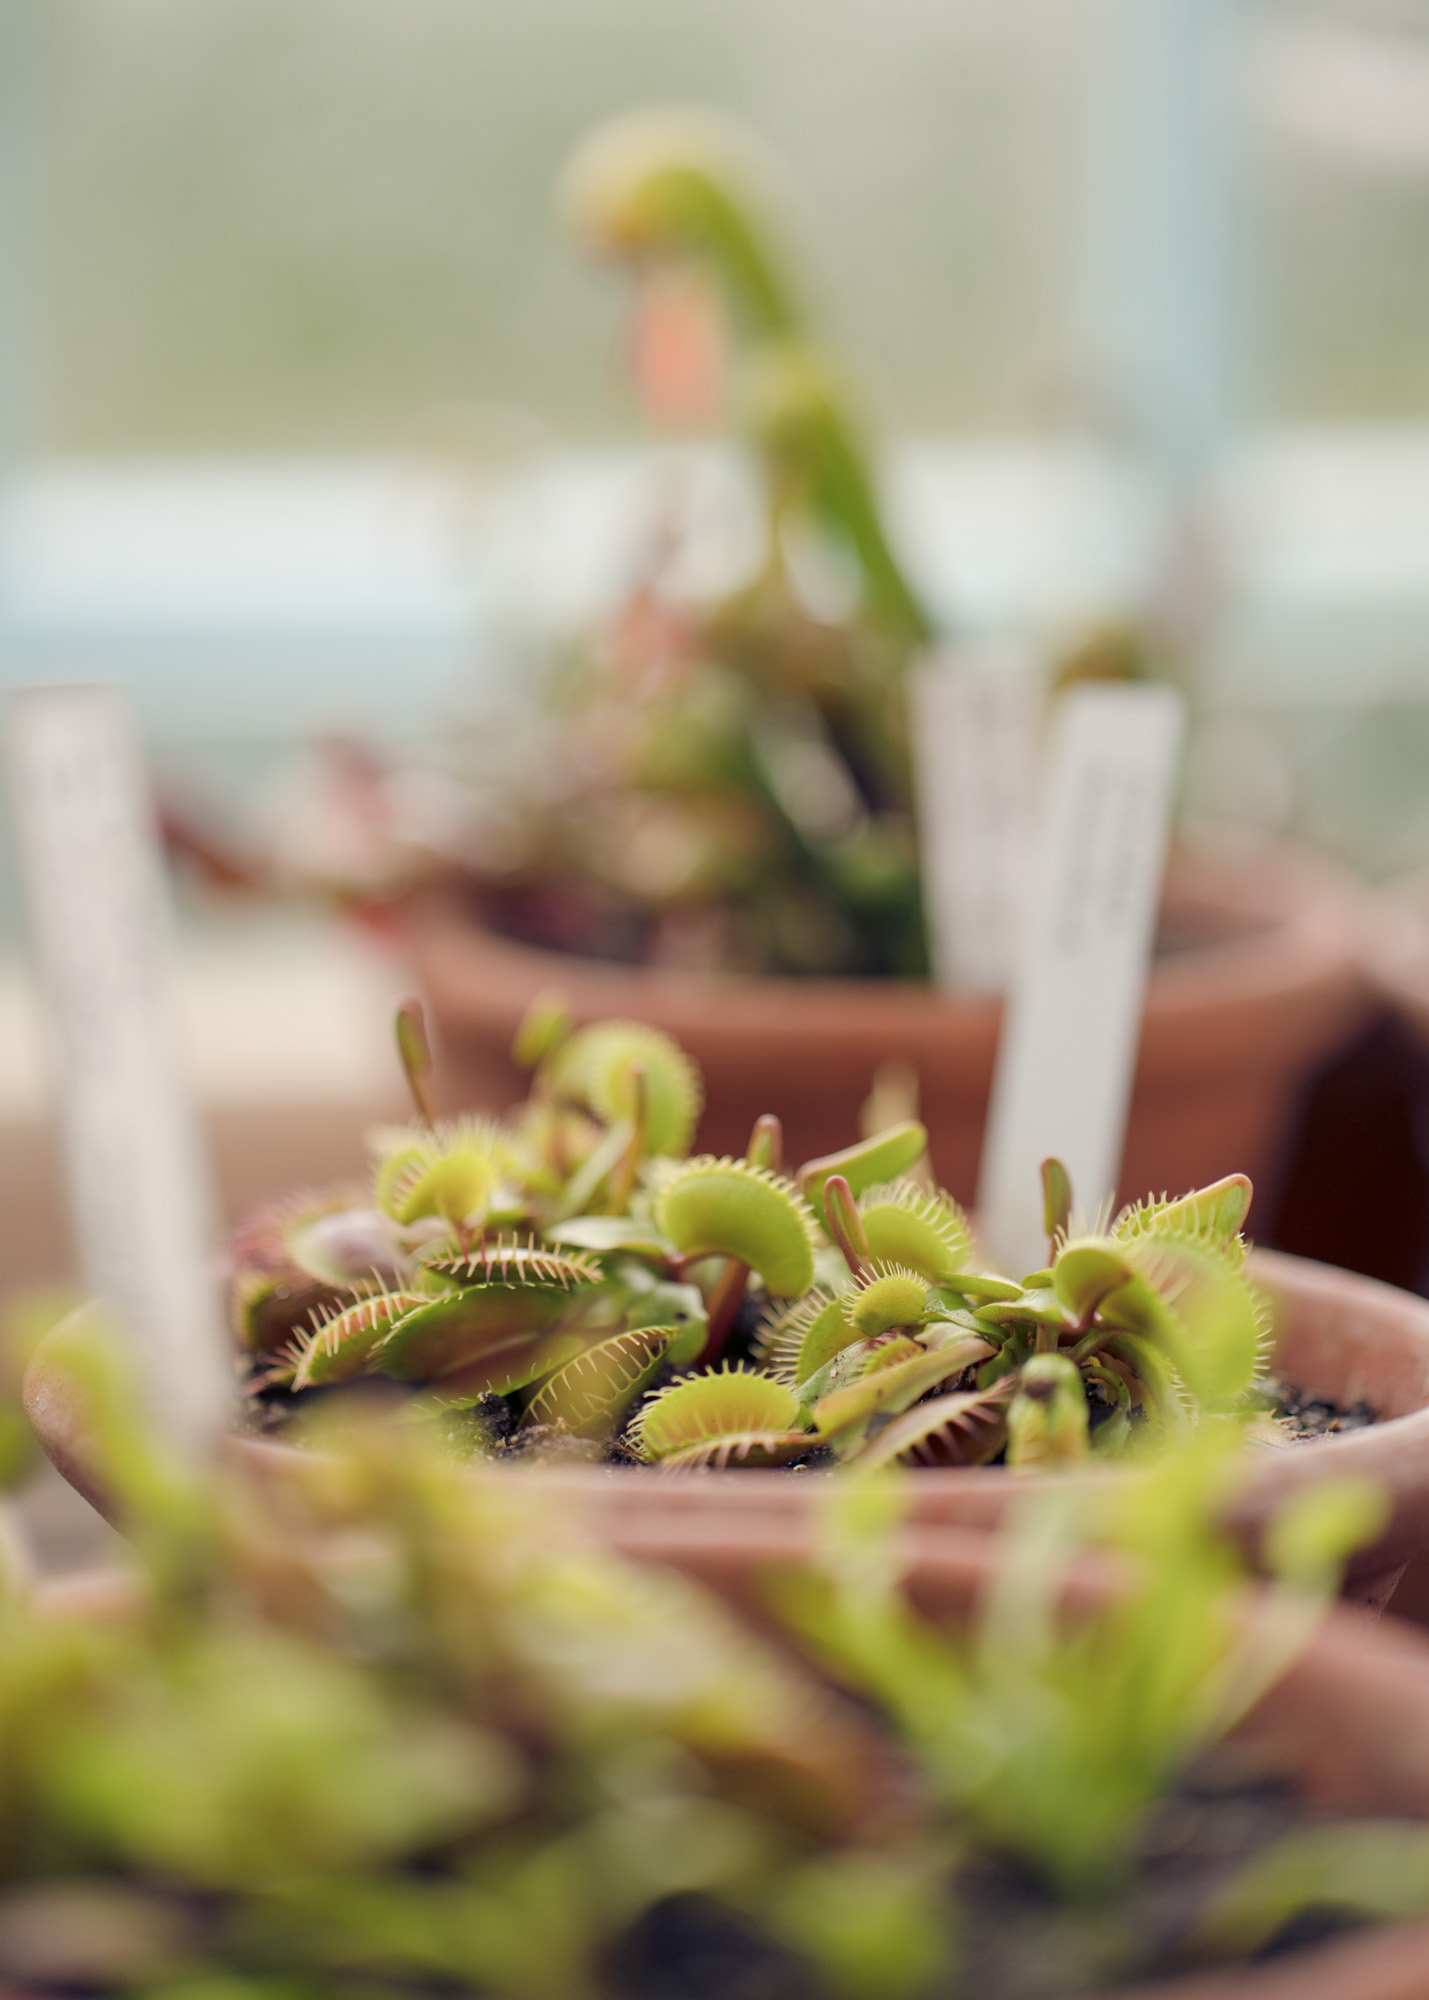 Venus fly traps growing in the green house